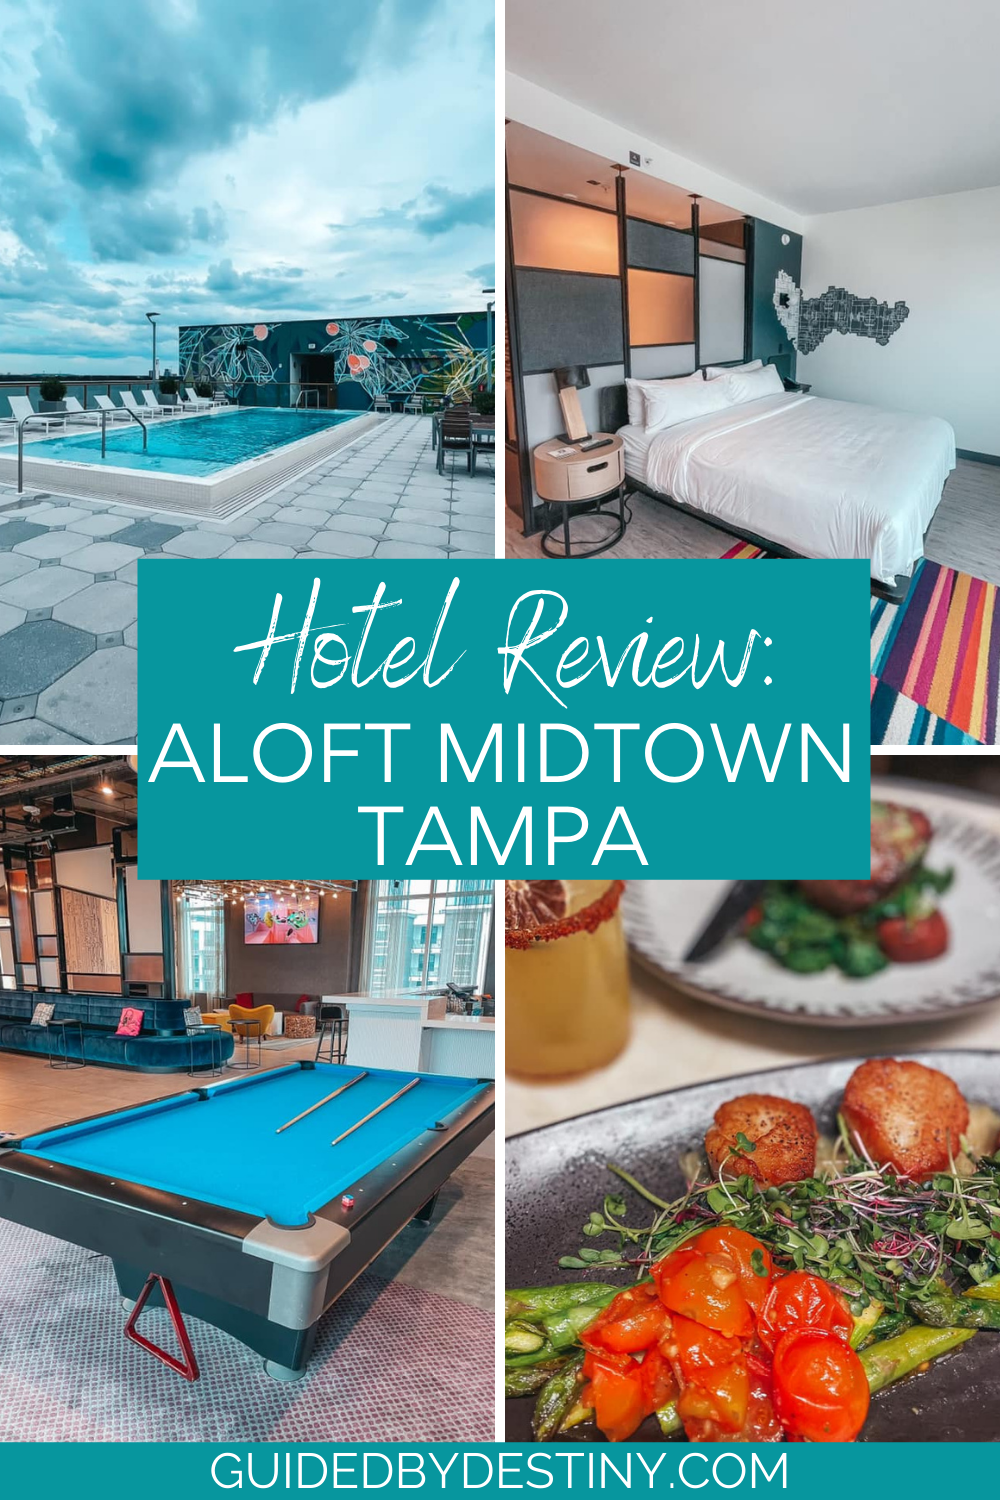 collage of amenities in Aloft Midtown Tampa hotel